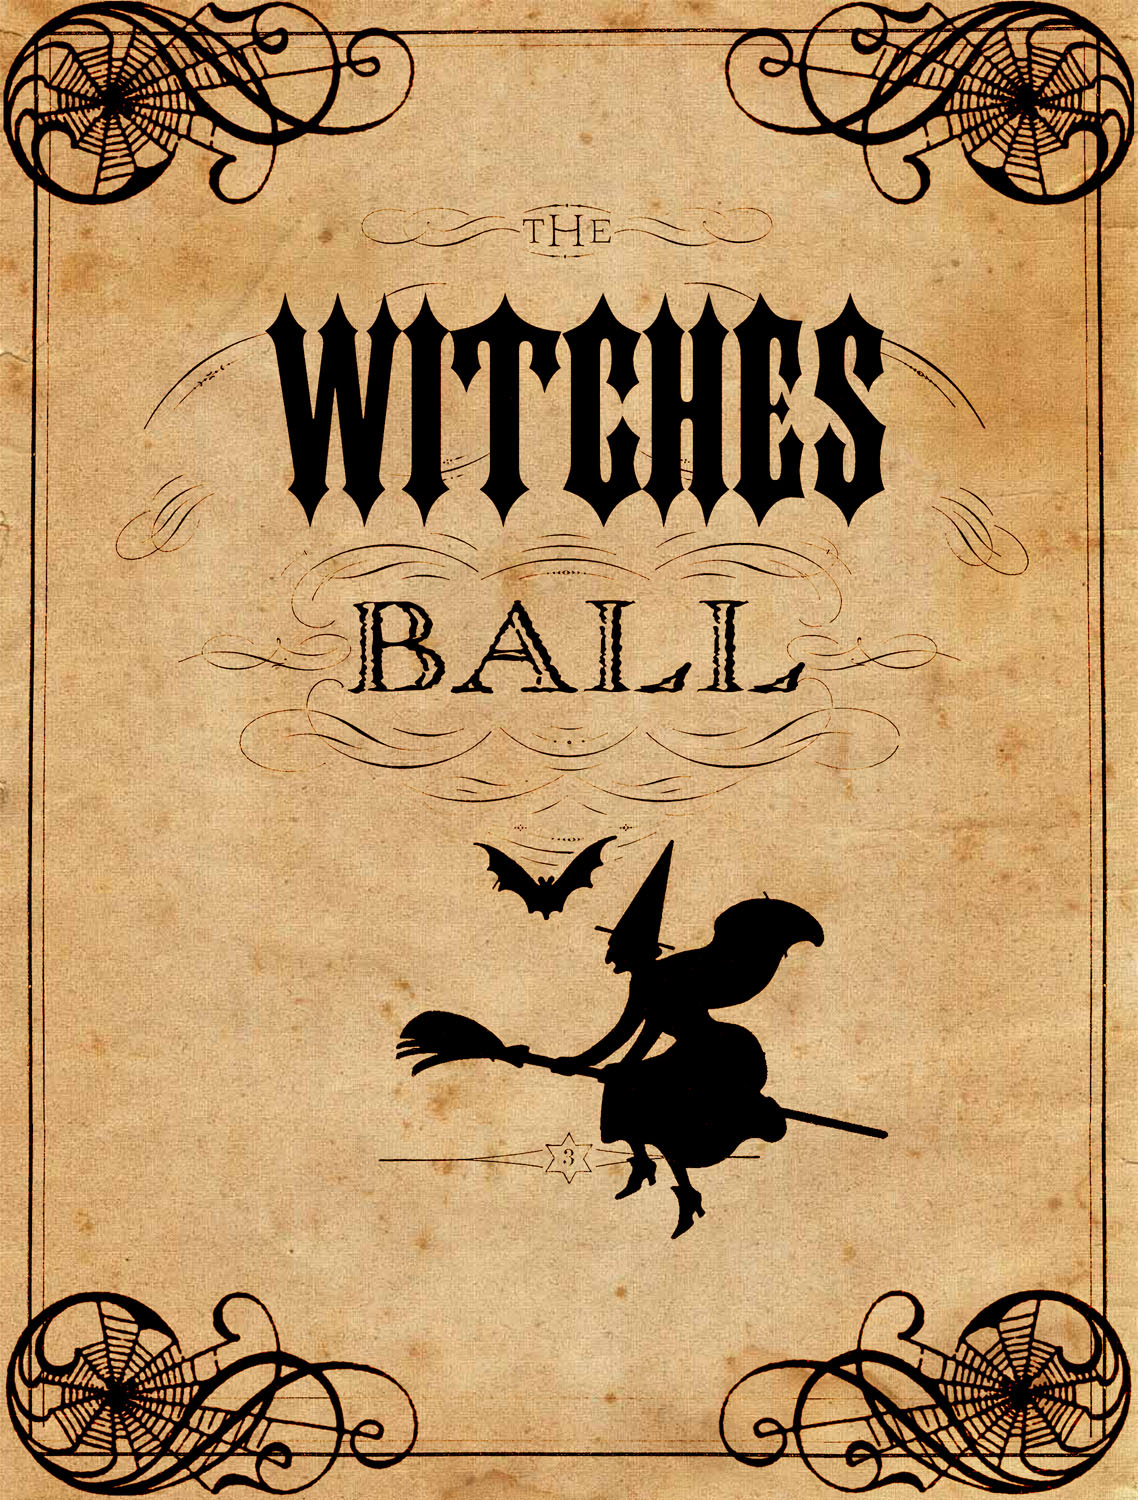 Vintage Halloween Printable - The Witches Ball - The Graphics Fairy - Free Printable Vintage Halloween Images